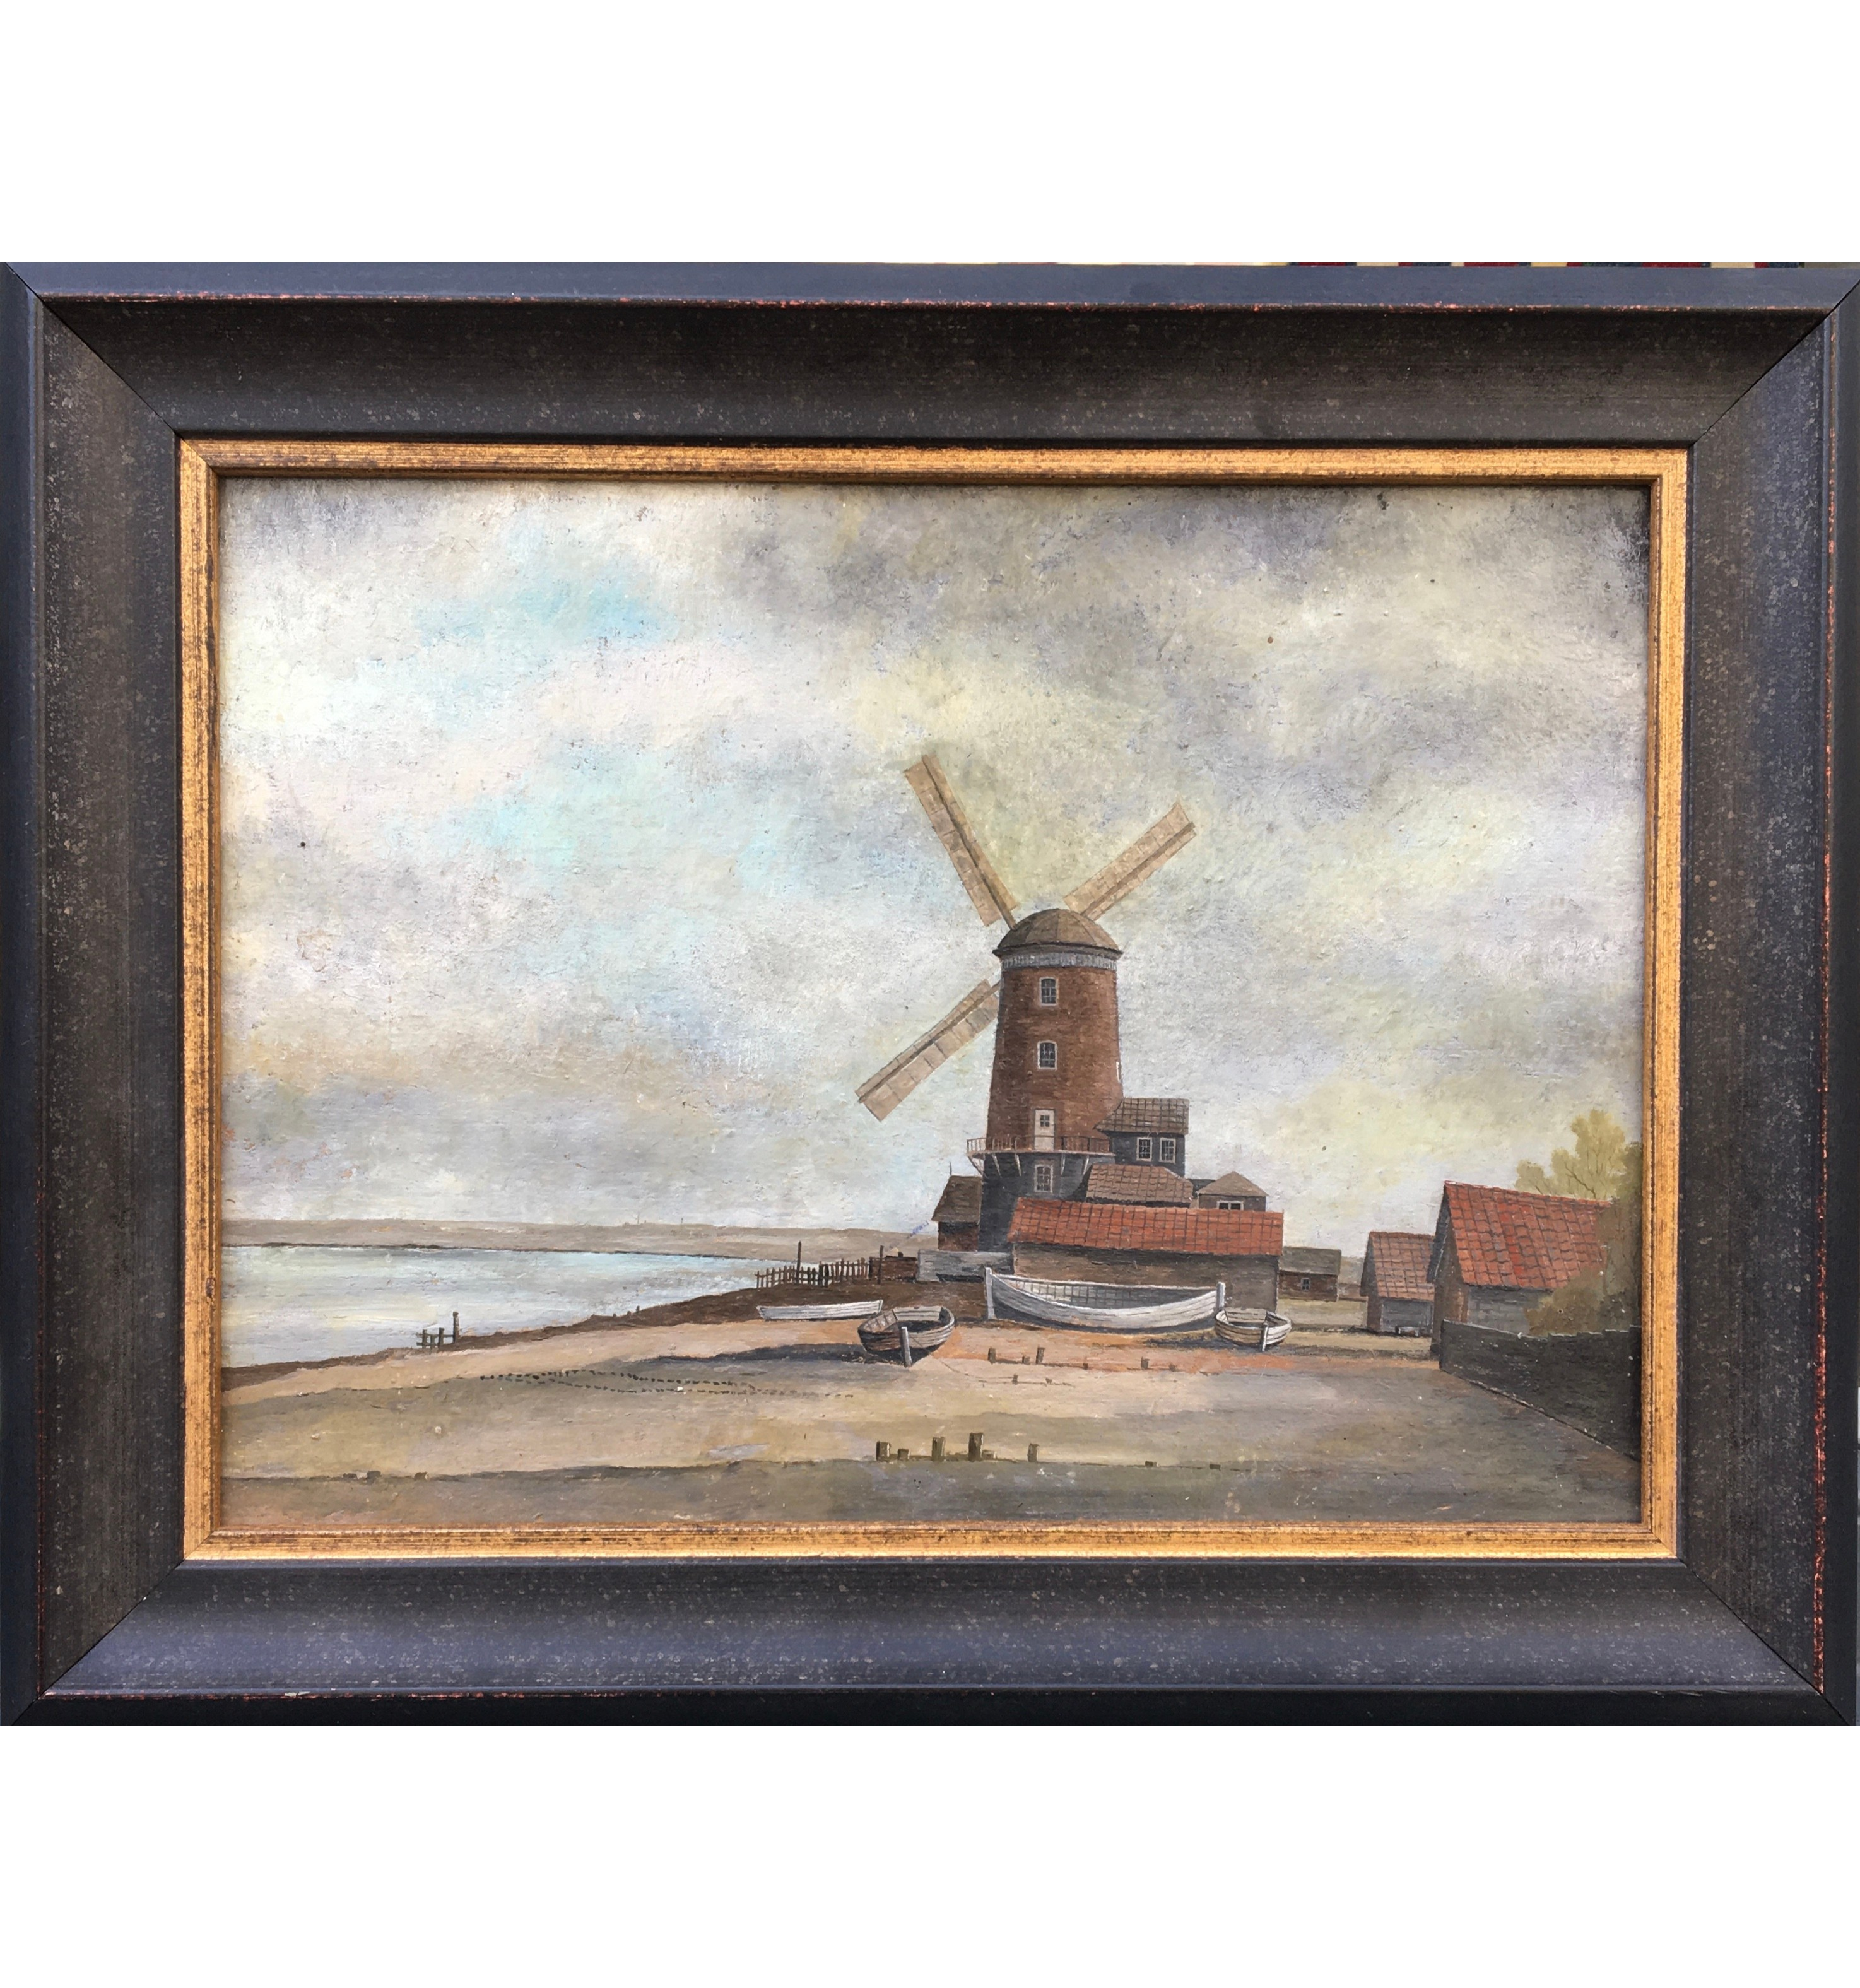 A mid 19th century painting of Cley Windmill, Norfolk, oil on board, Circa 1845